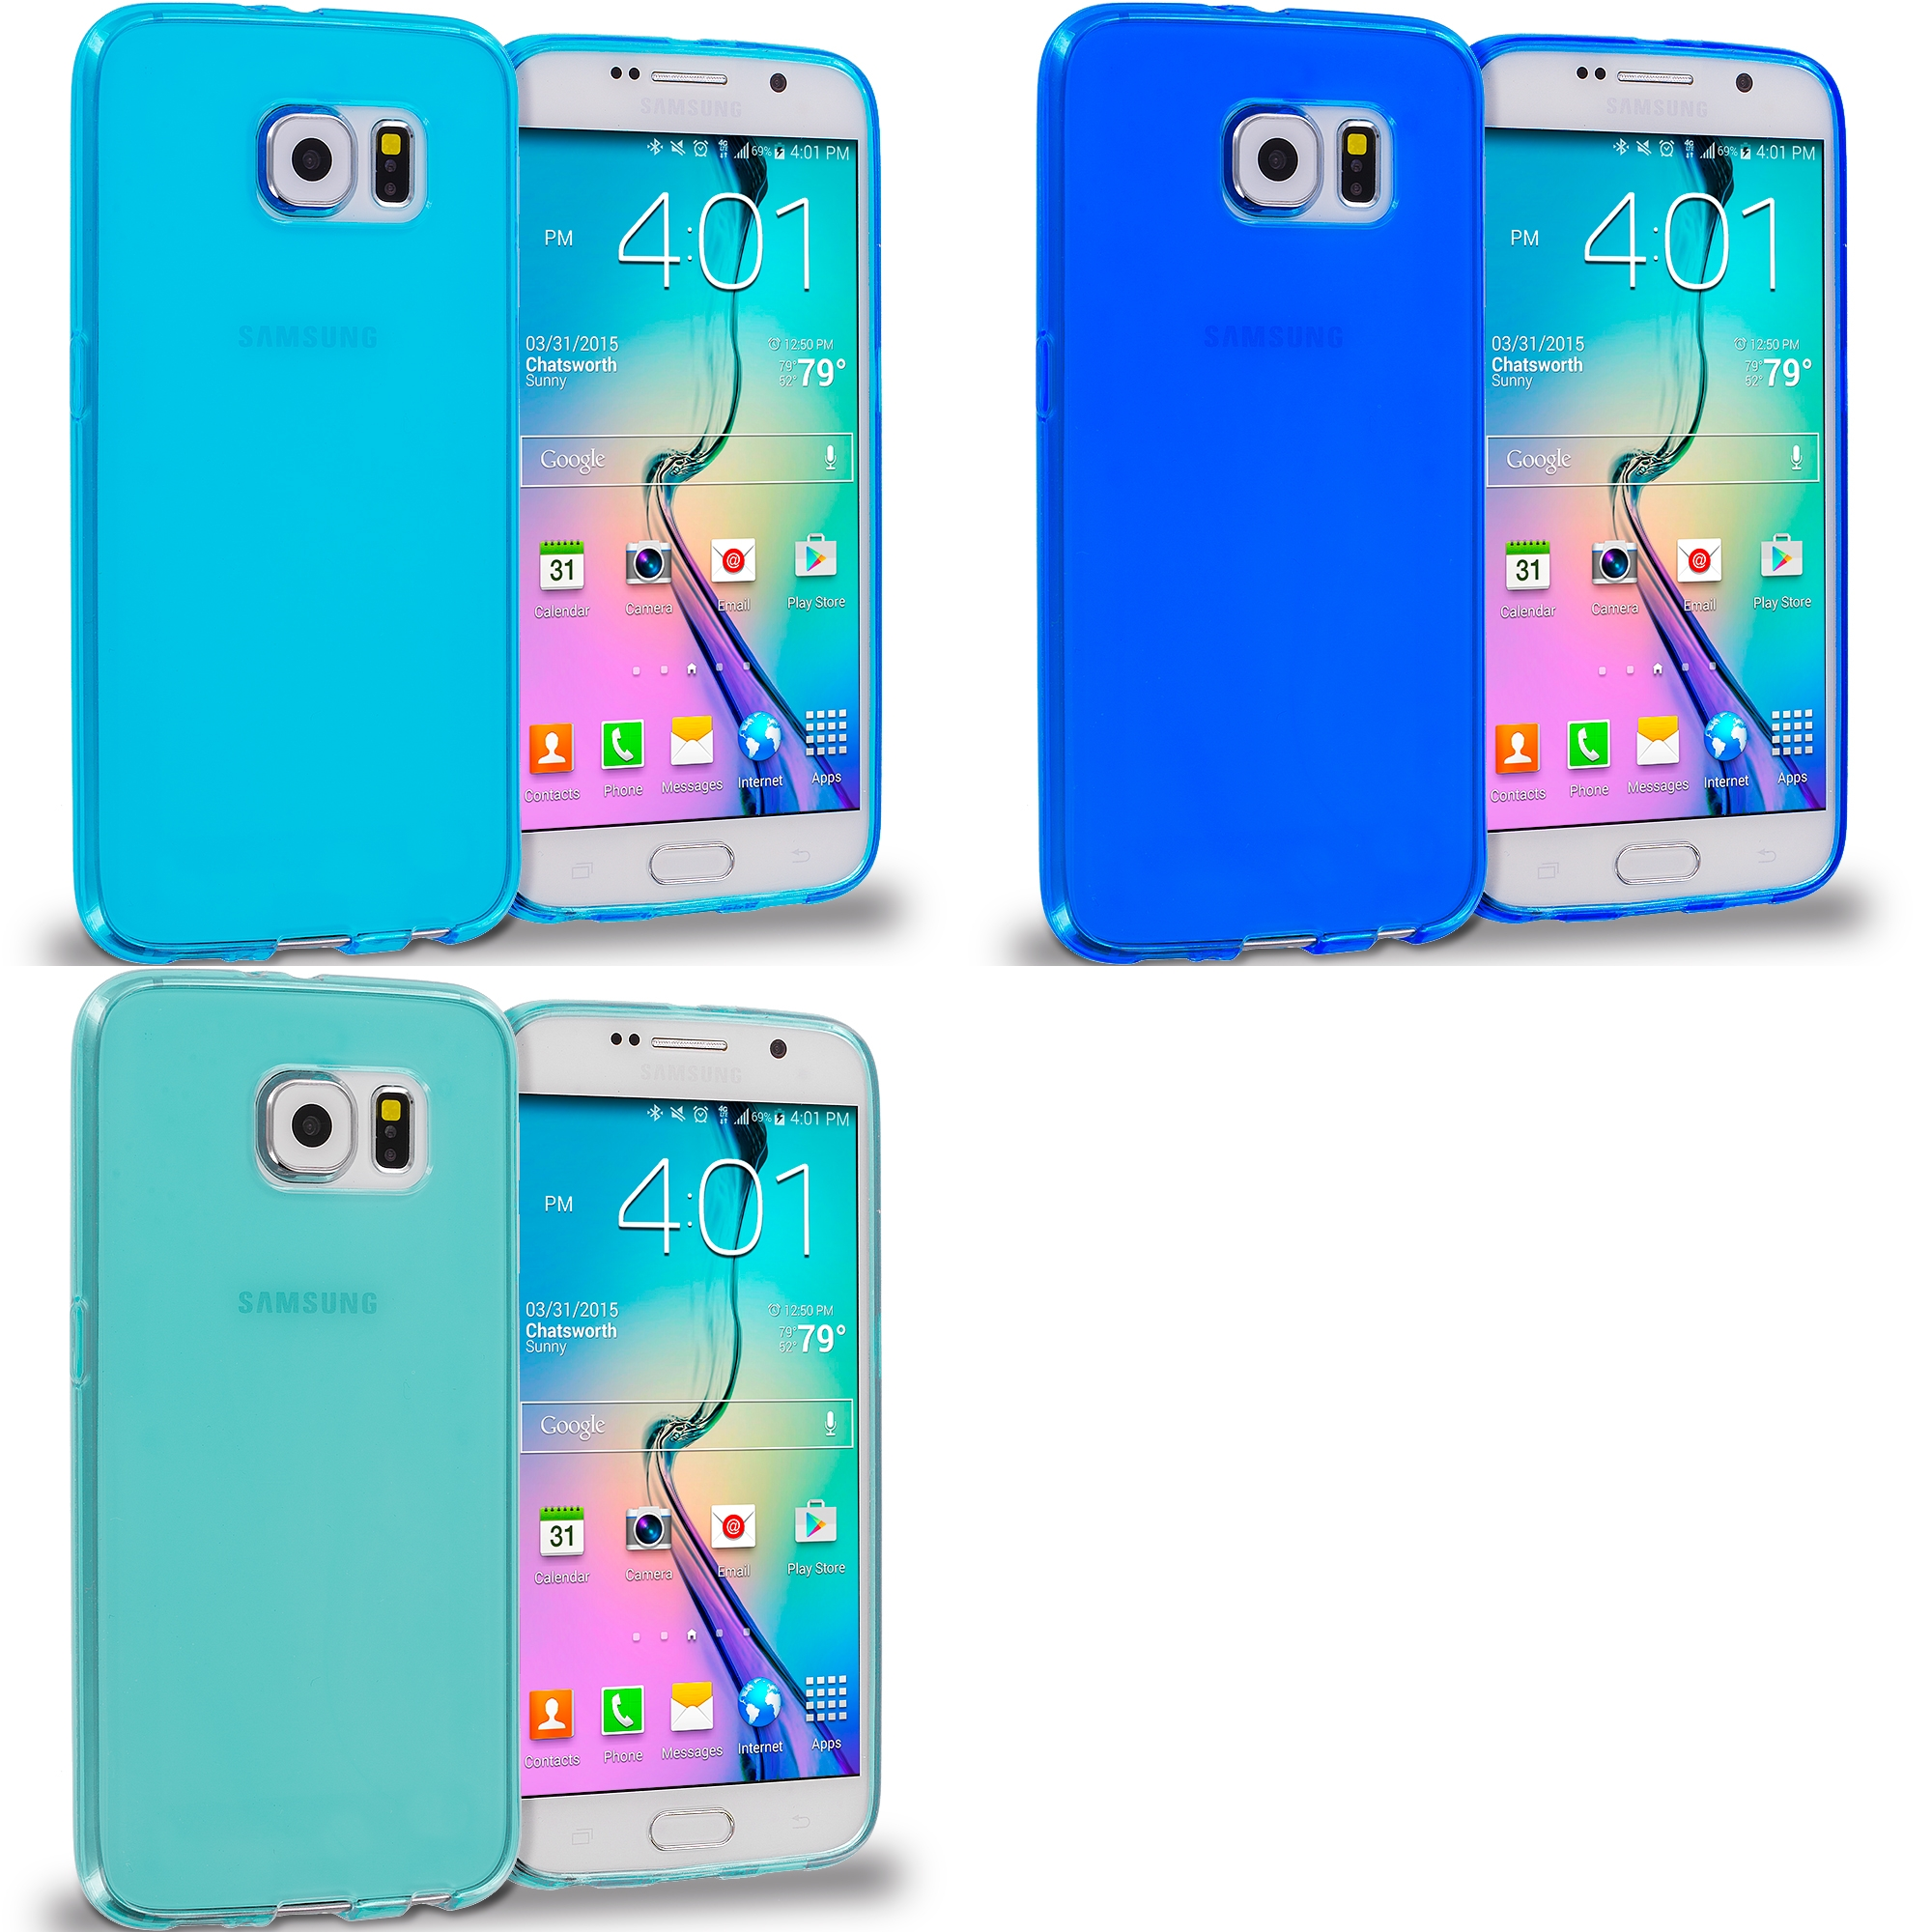 Samsung Galaxy S6 Combo Pack : Blue Plain TPU Rubber Skin Case Cover